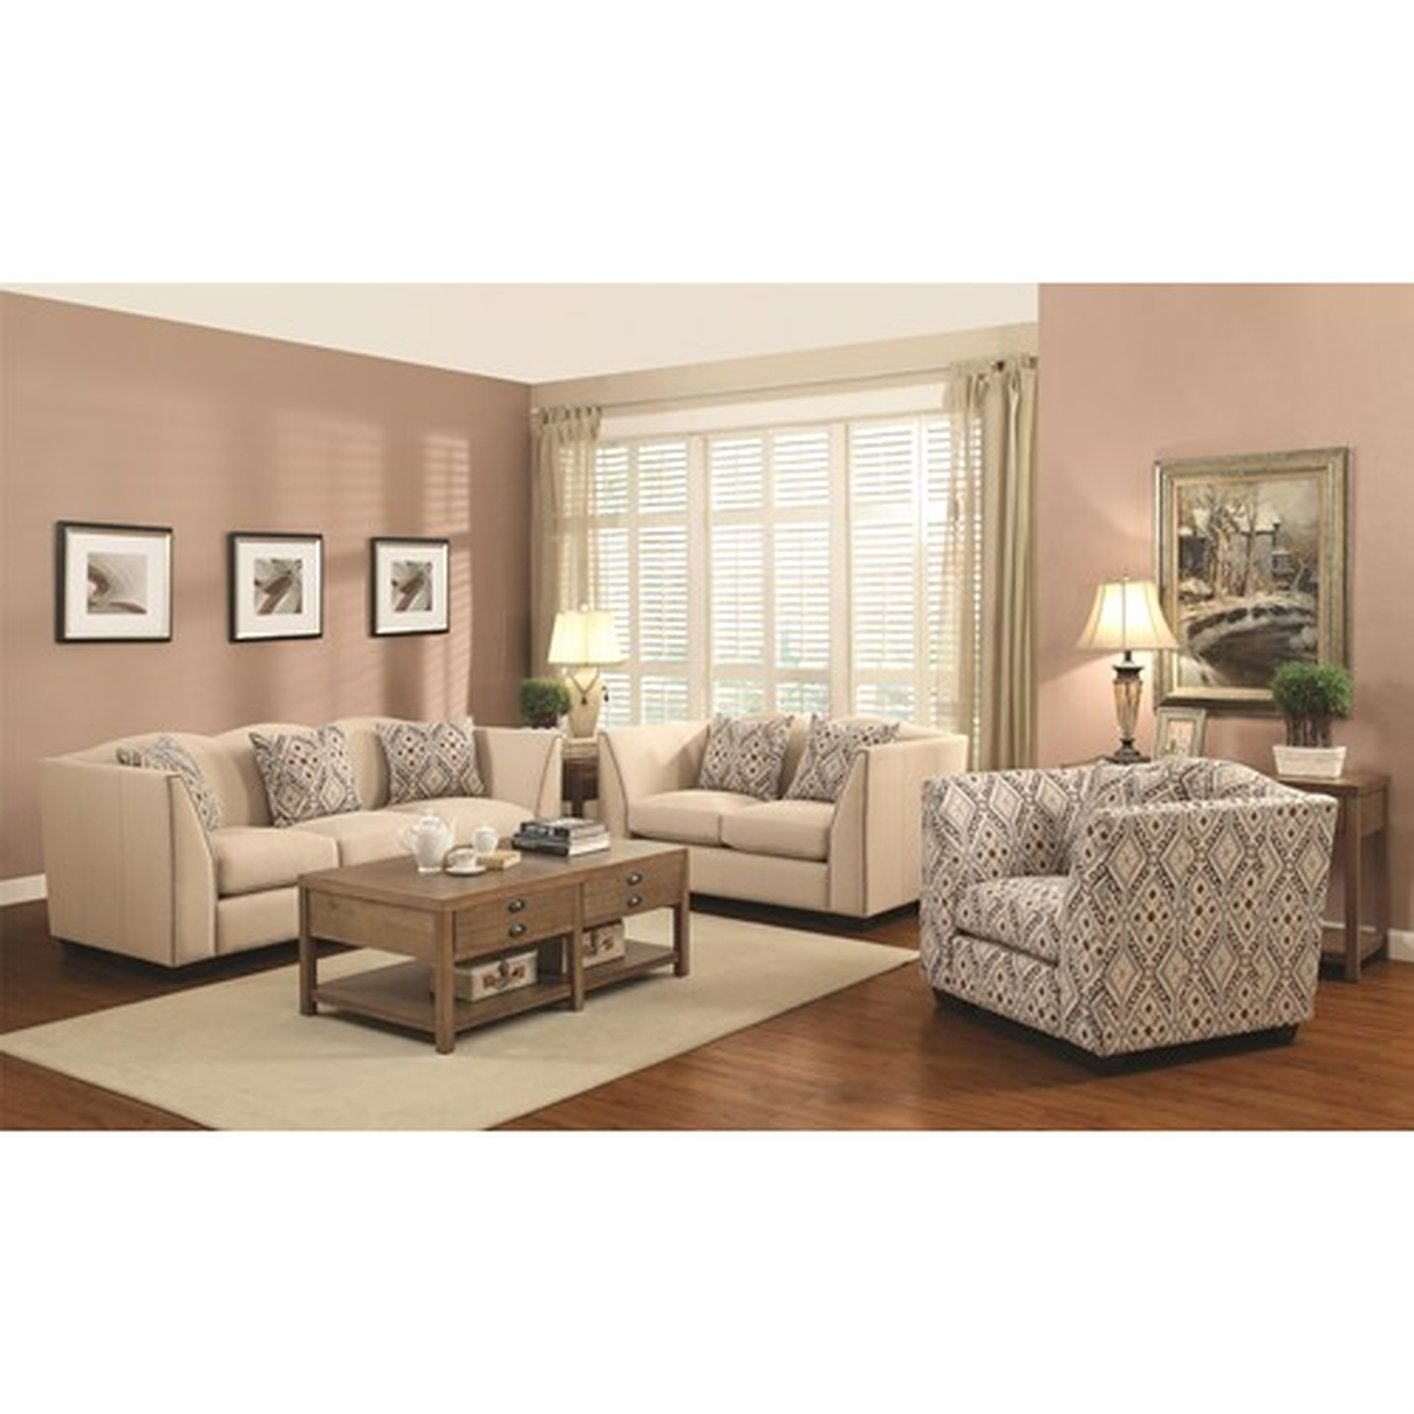 Coaster Siana 902167 Beige Fabric Accent Chair Steal A Sofa Throughout Accent Sofa Chairs (View 12 of 15)